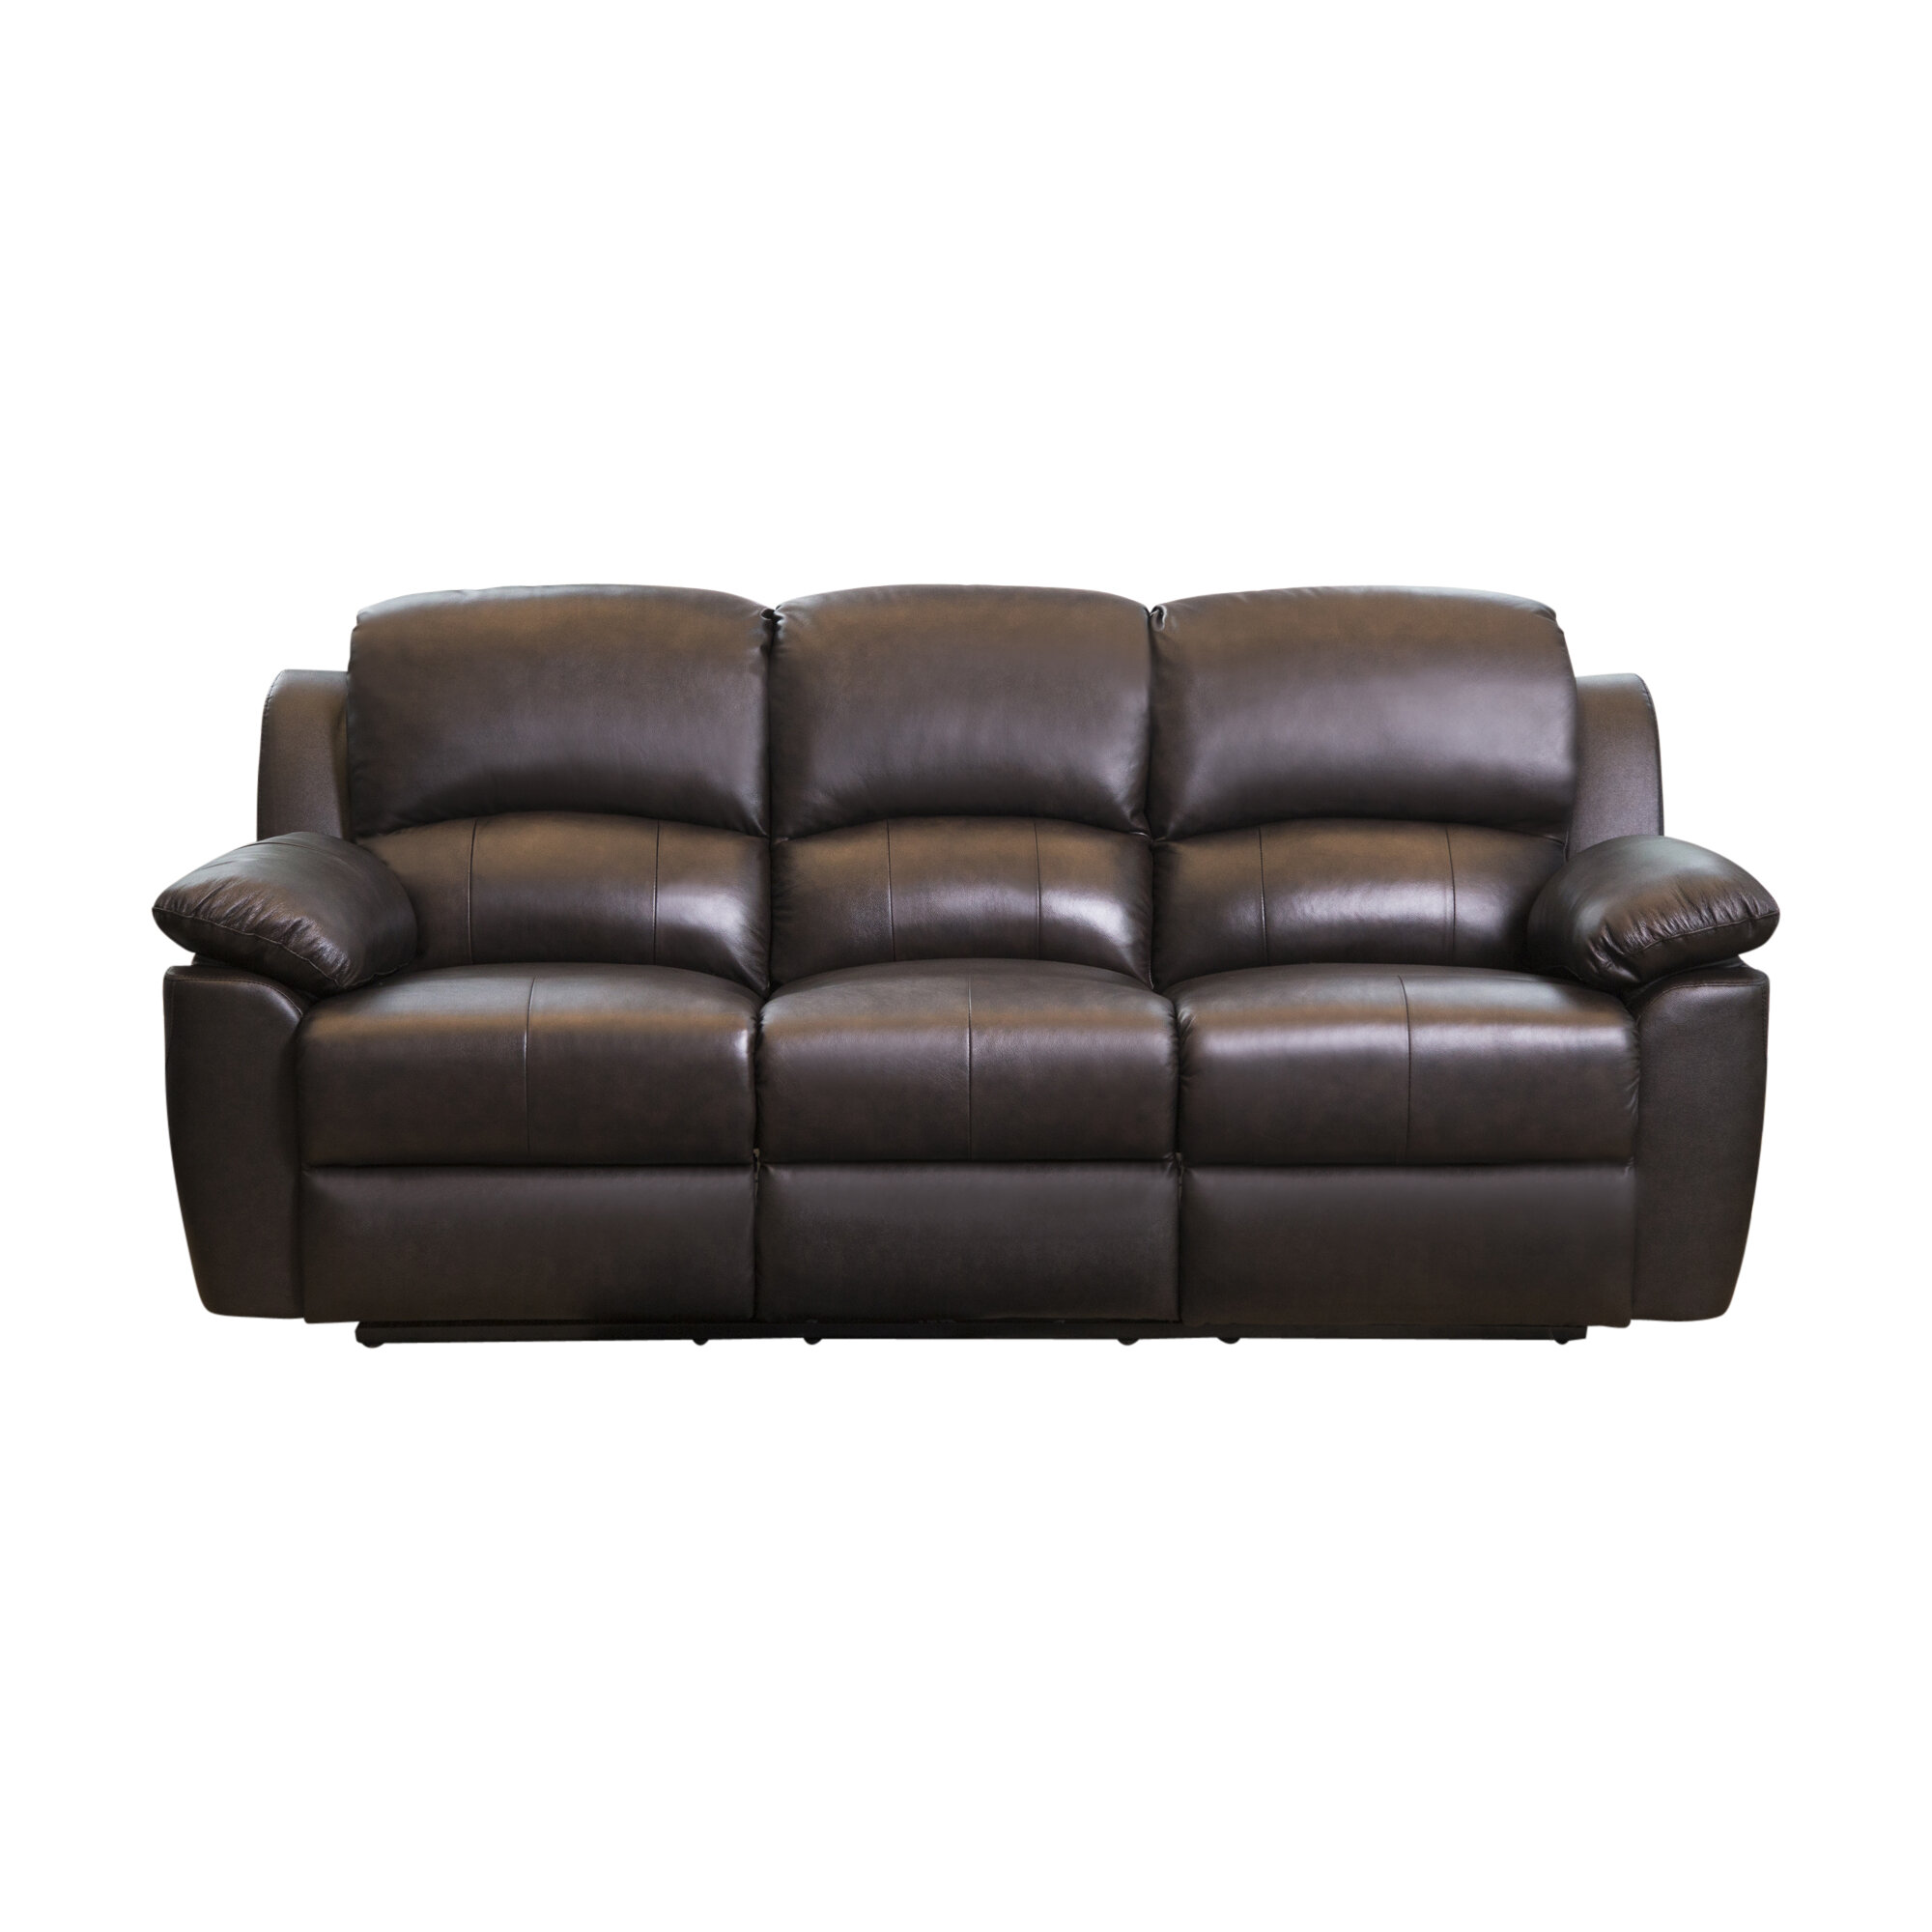 Darby Home Co Blackmoor Genuine Leather Reclining Sofa Reviews Wayfair